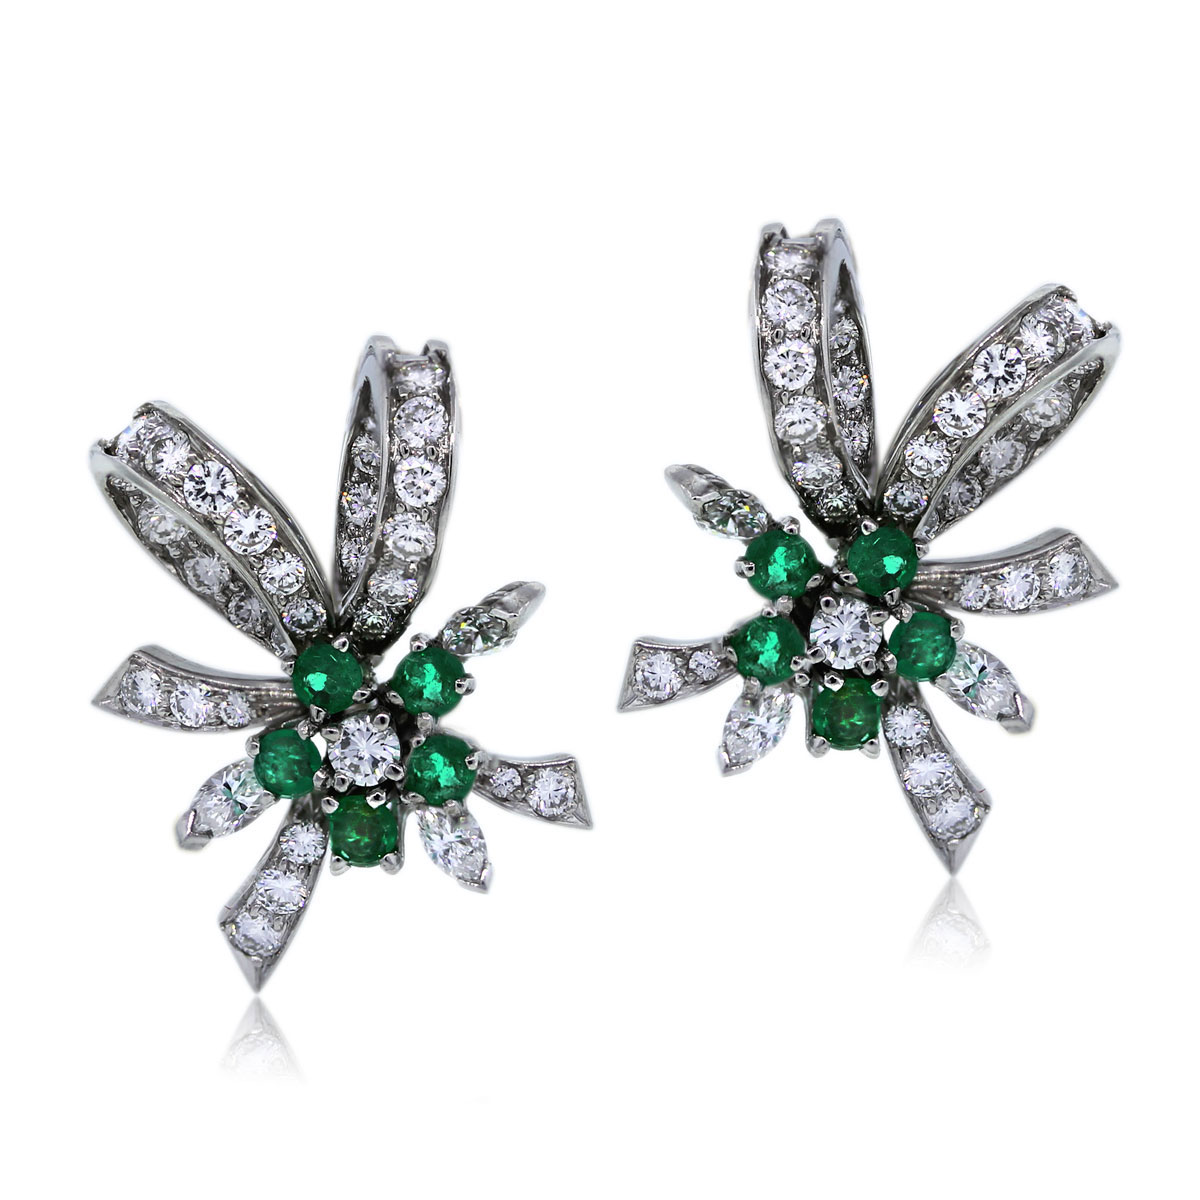 You are Viewing these Stunning Emerald and Diamond Earrings!